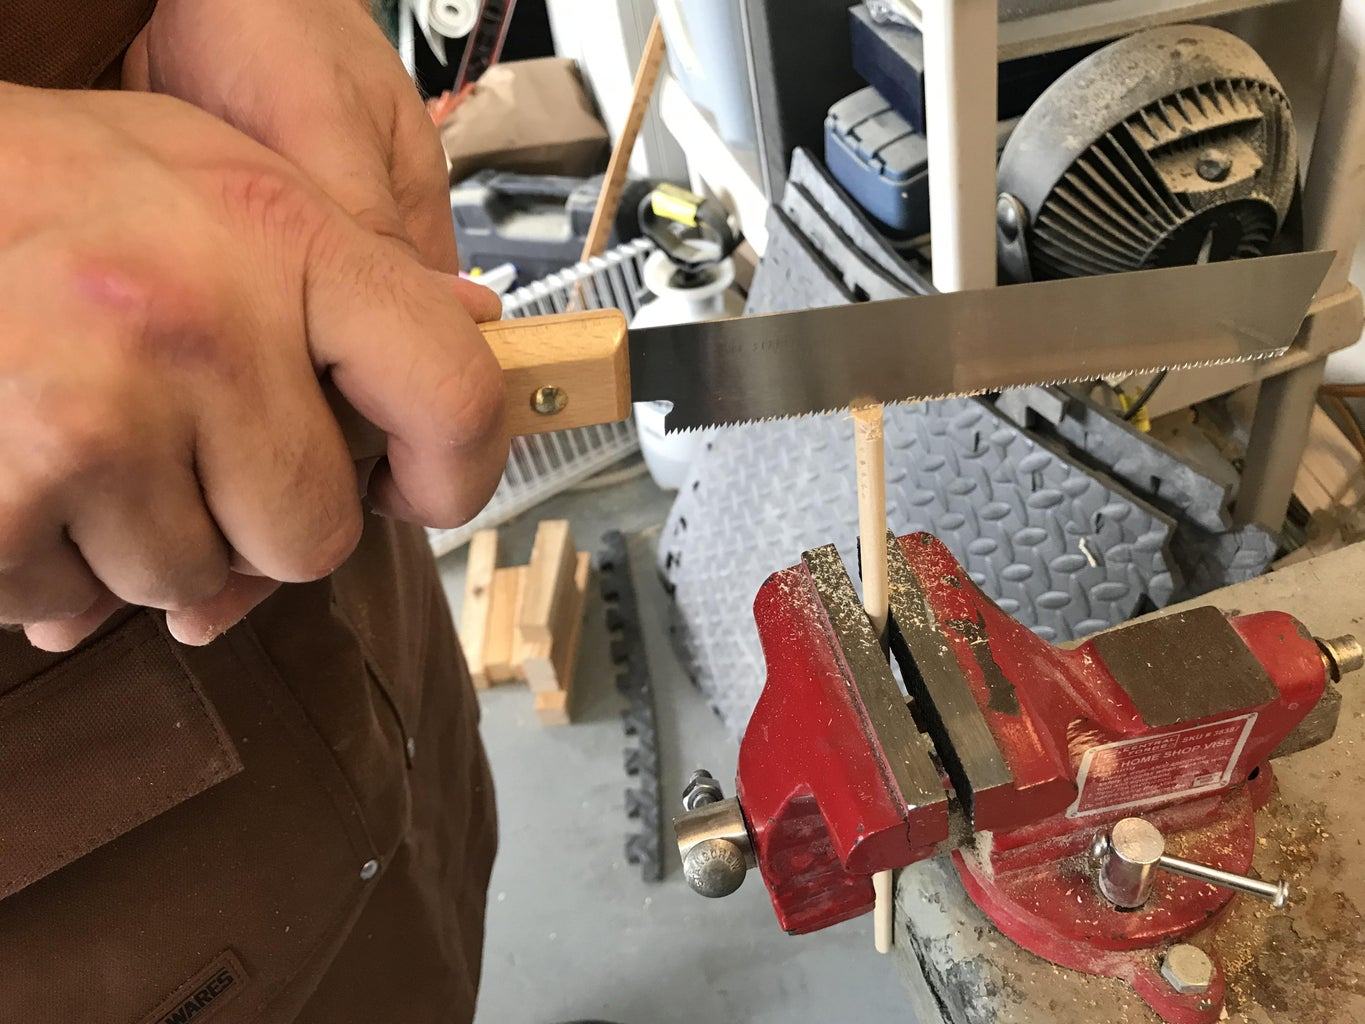 Mounting the Blade in the Handle